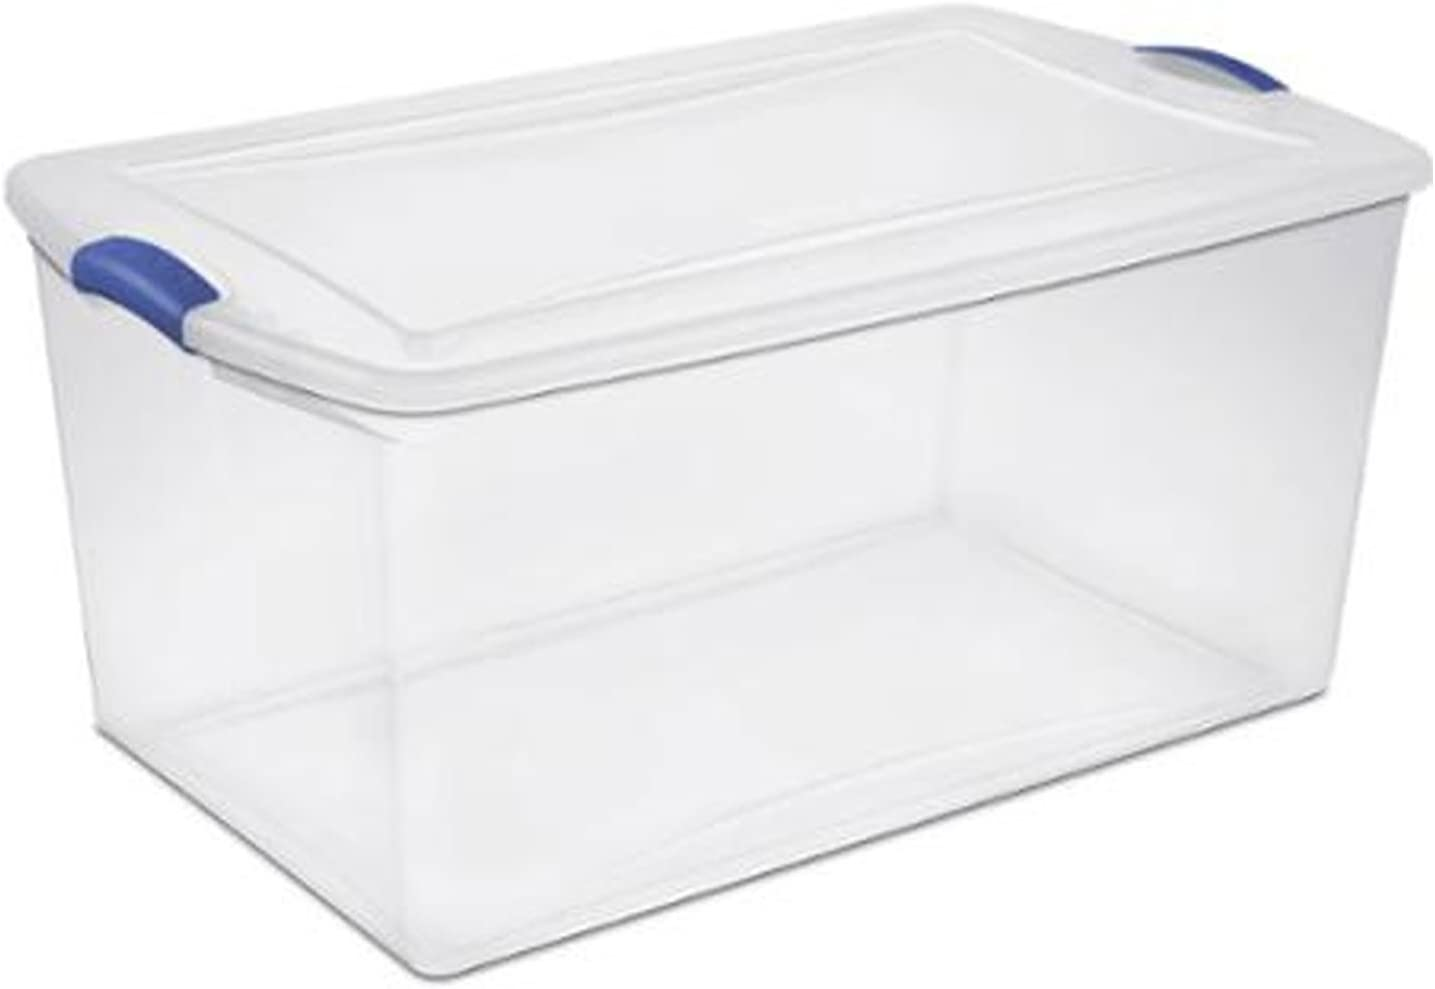 4 Pack 105 Quart Storage Organizer Box Plastic Container Bin with Lid Clear